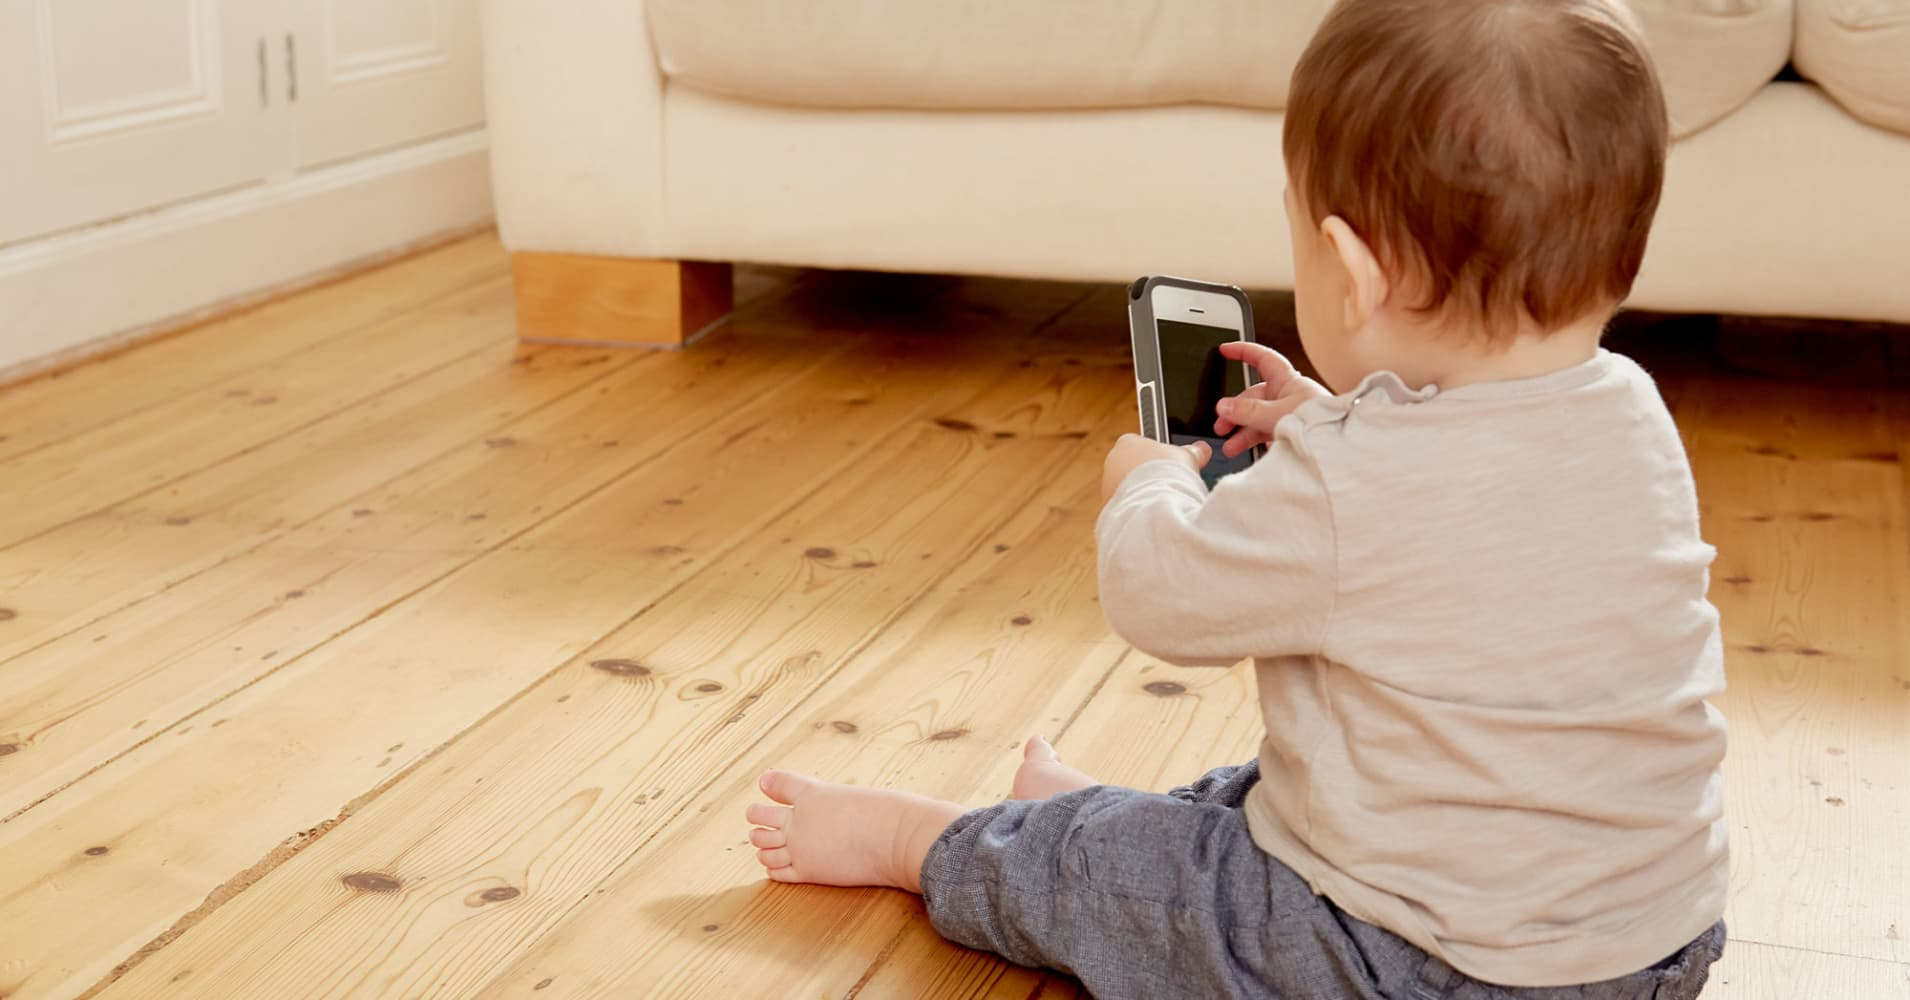 Chinese toddler disables mom's iPhone for 47 years